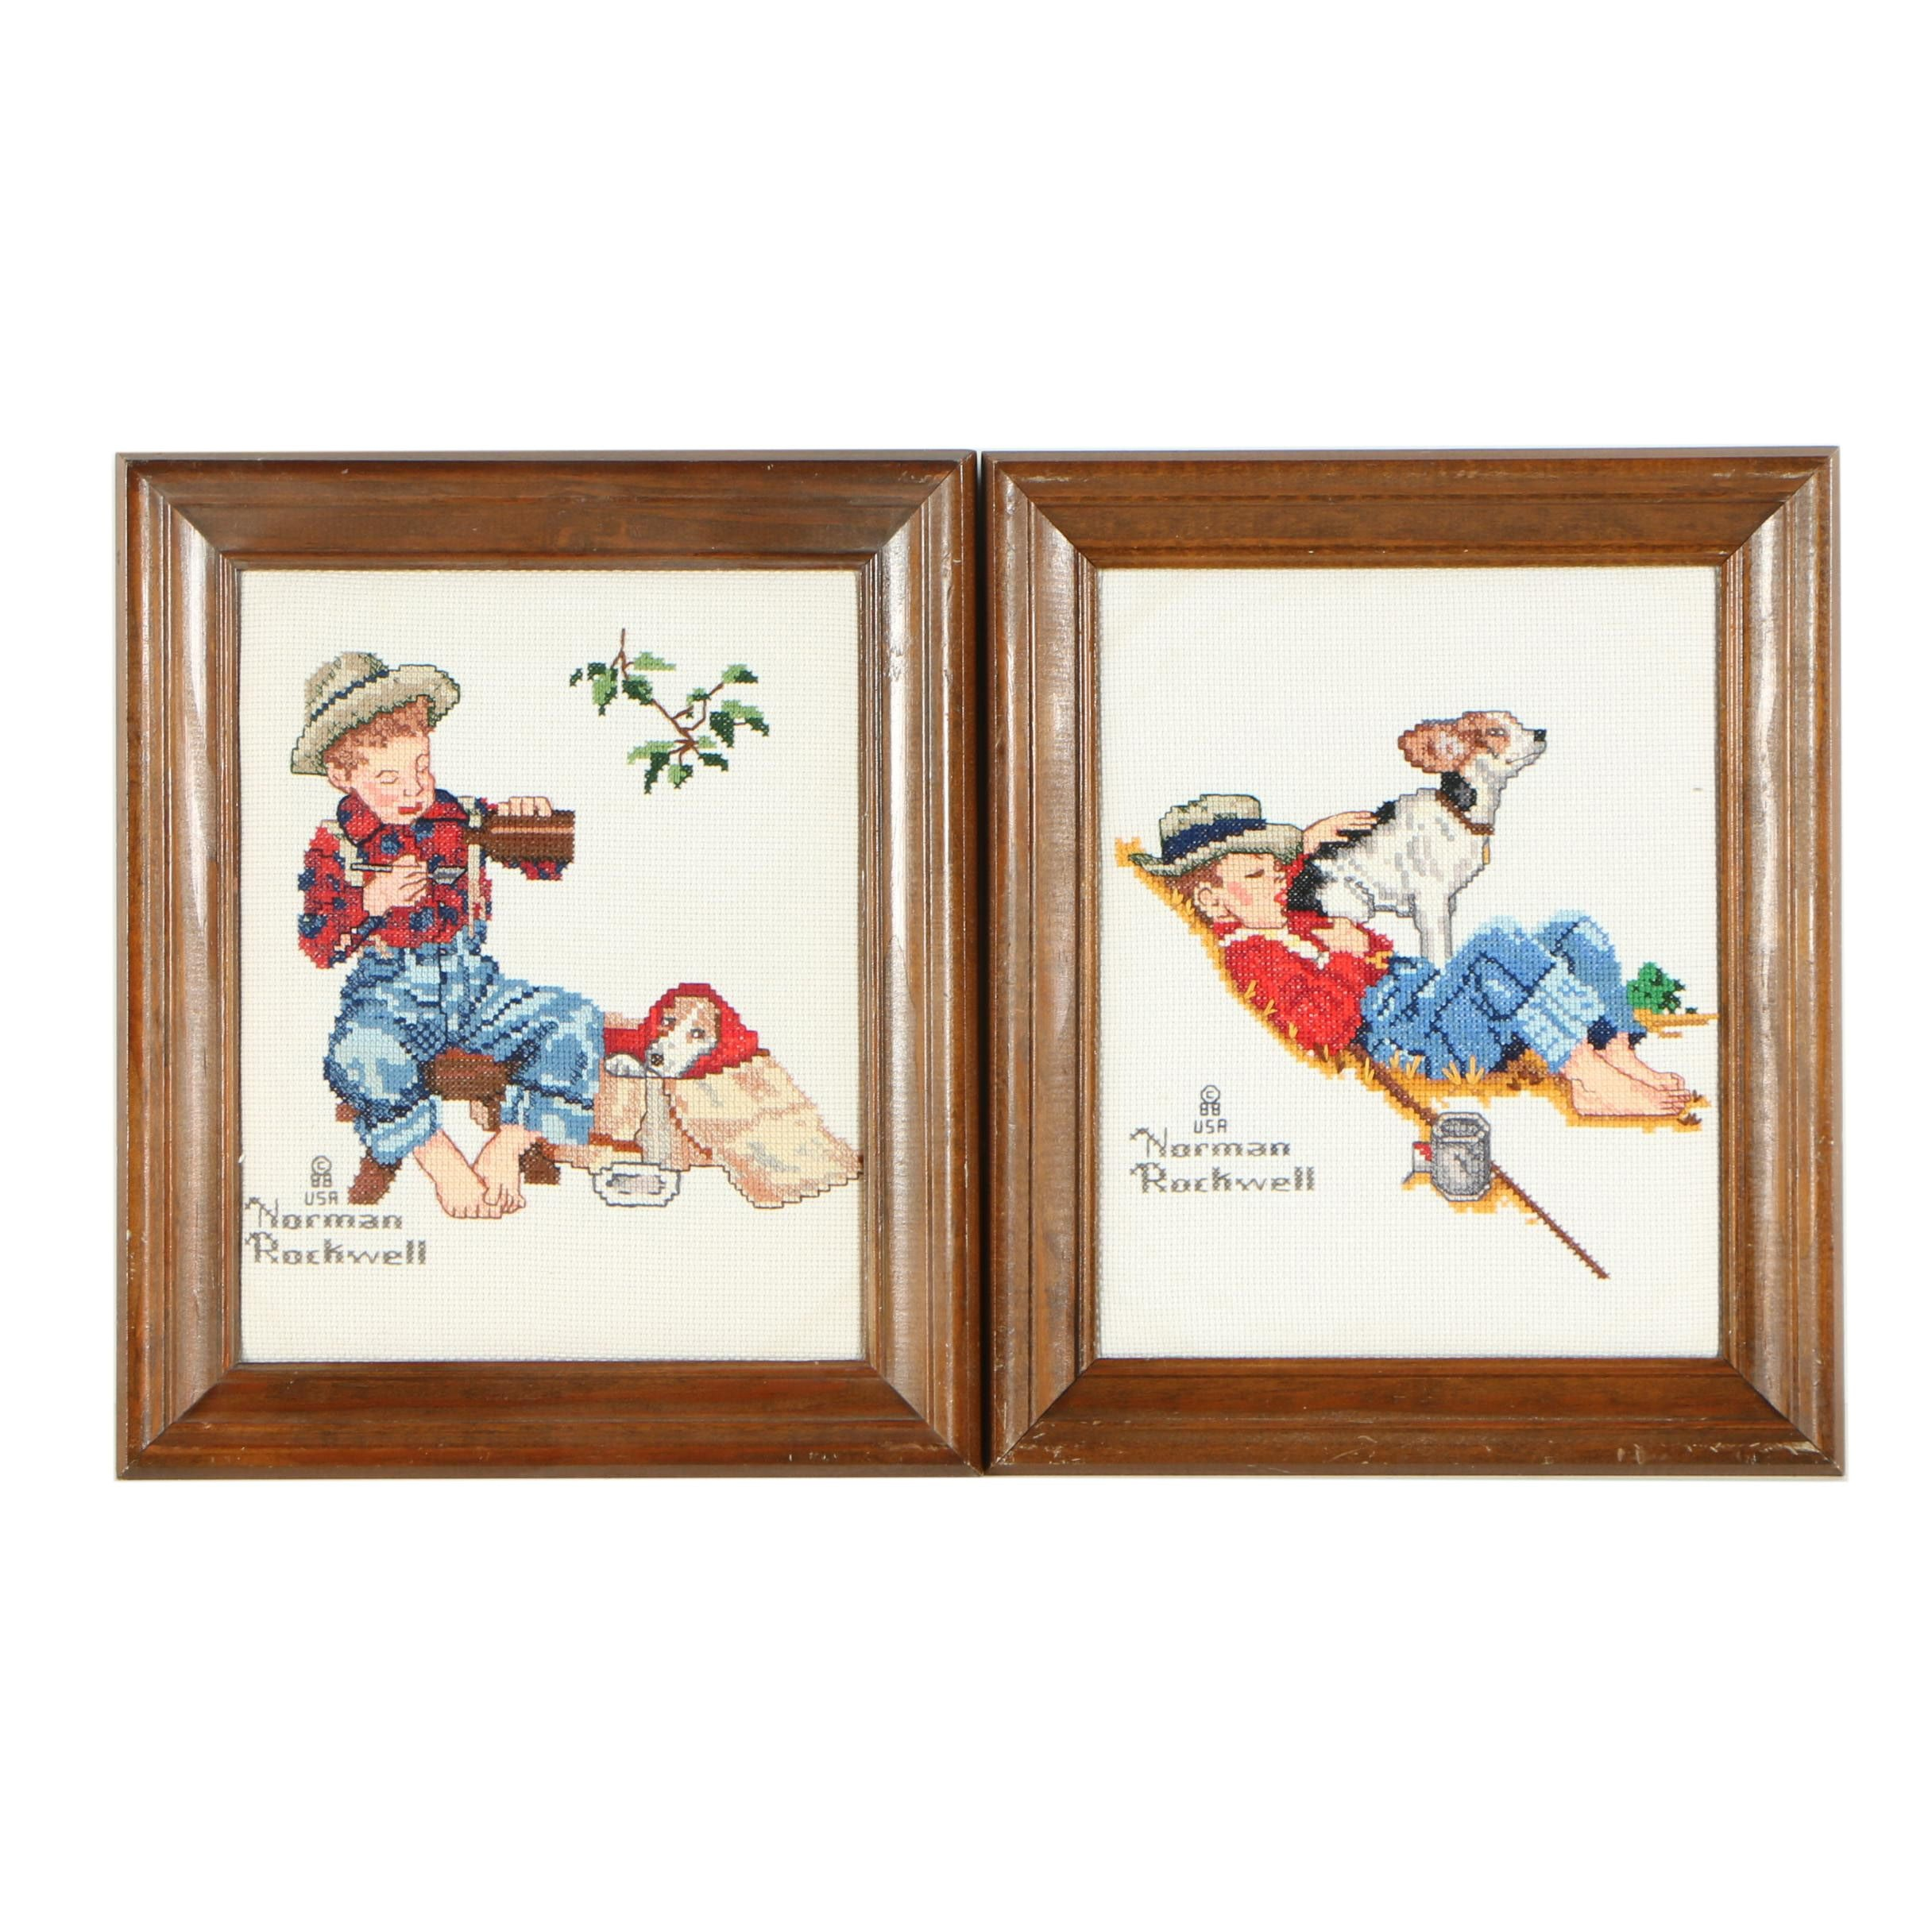 "Cross-Stitch Embroideries After Norman Rockwell's ""A Boy and His Dog"" Series"